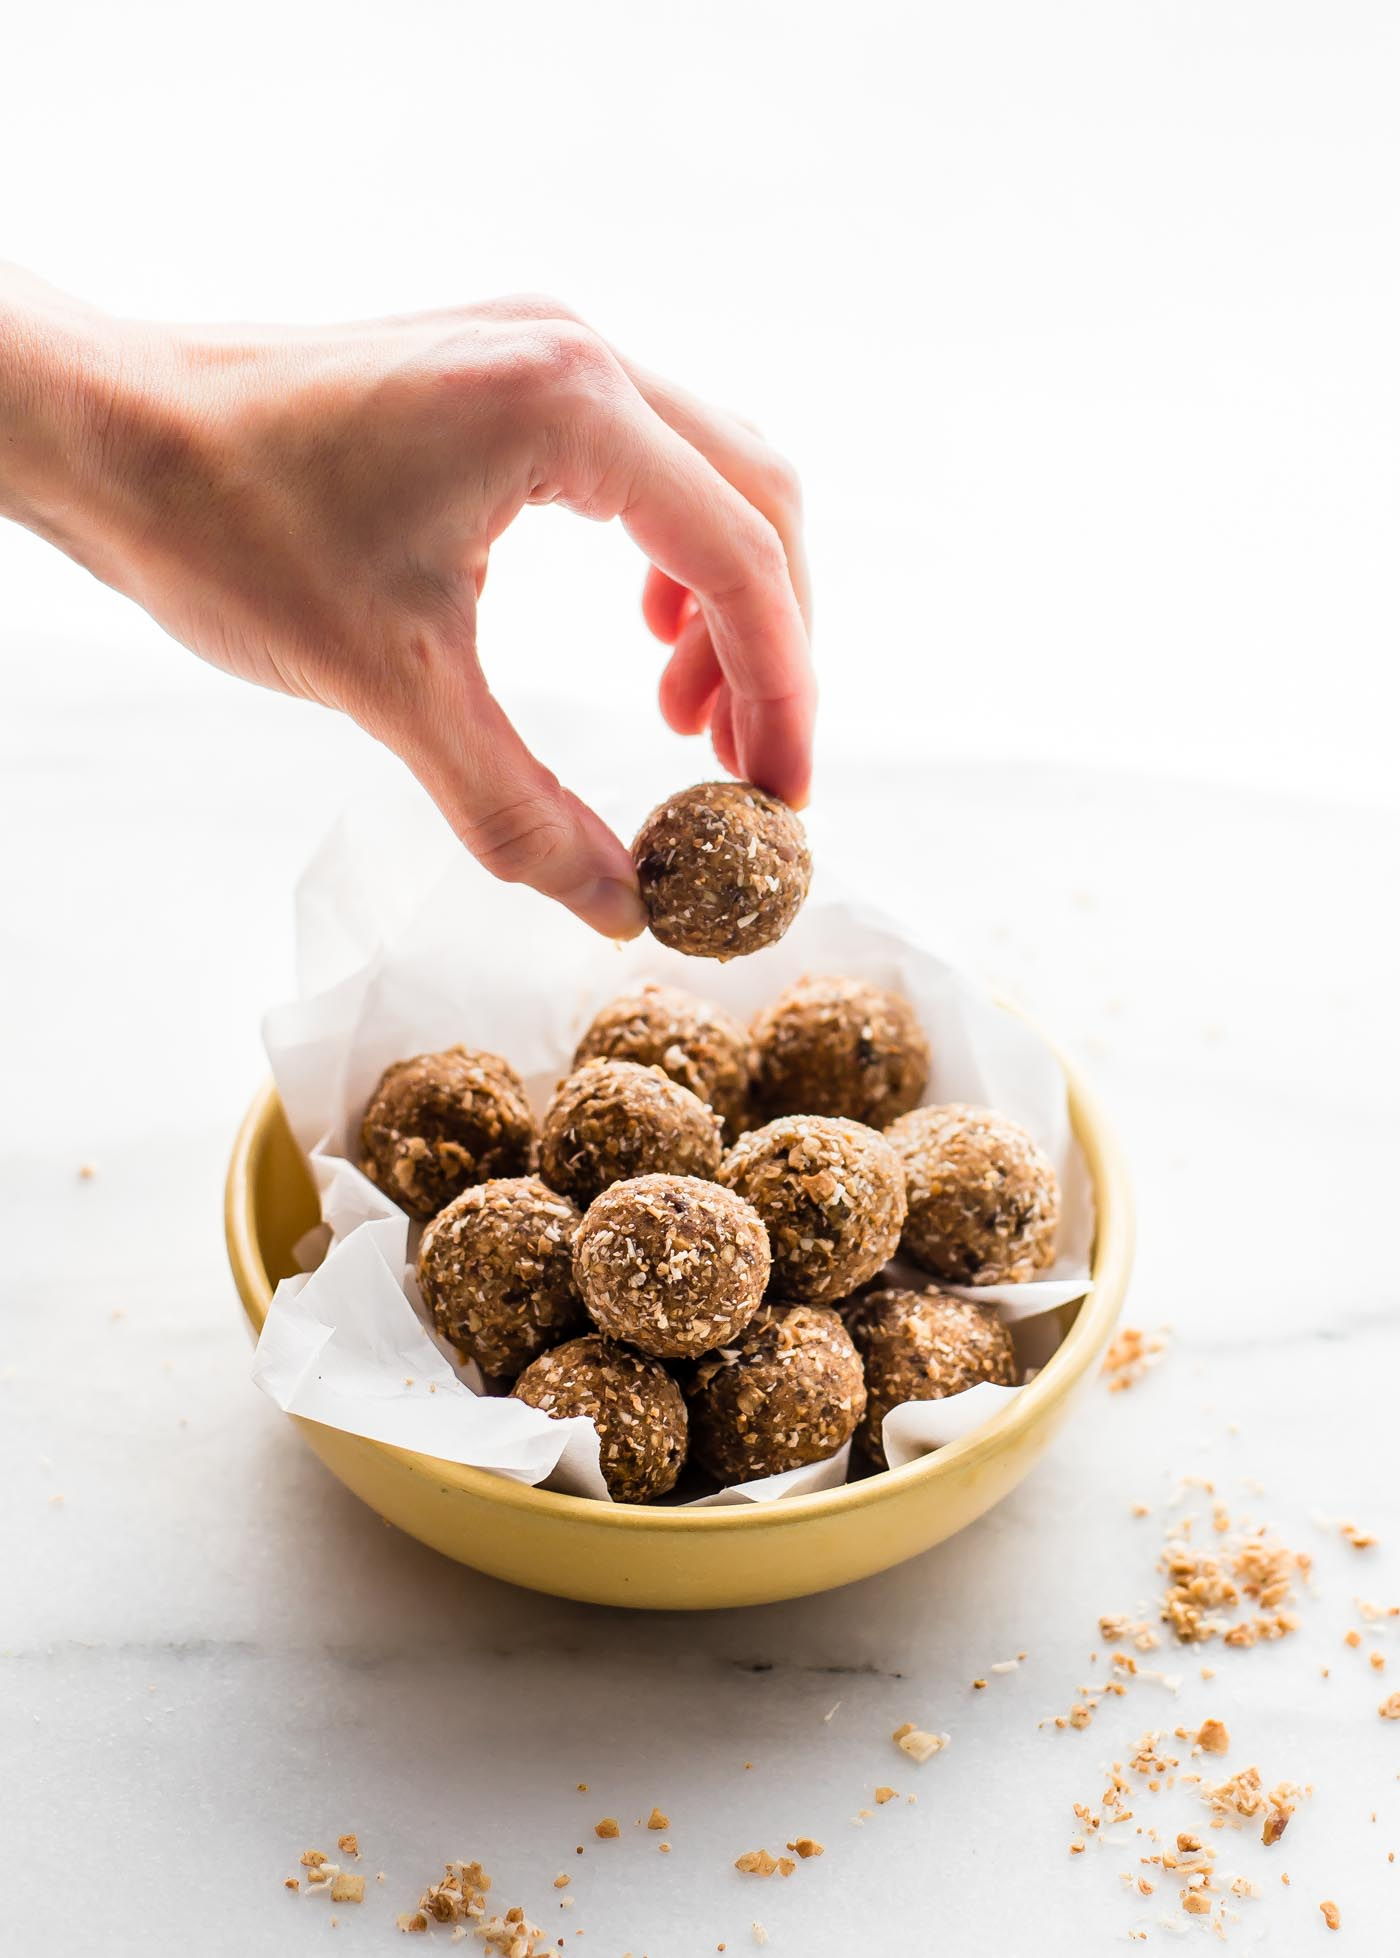 Cinnamon Toasted Coconut Bliss balls. A healthy sweet bliss balls recipe made with dates, cashews, toasted coconut, and maple. An easy Paleo & vegan snack or treat.